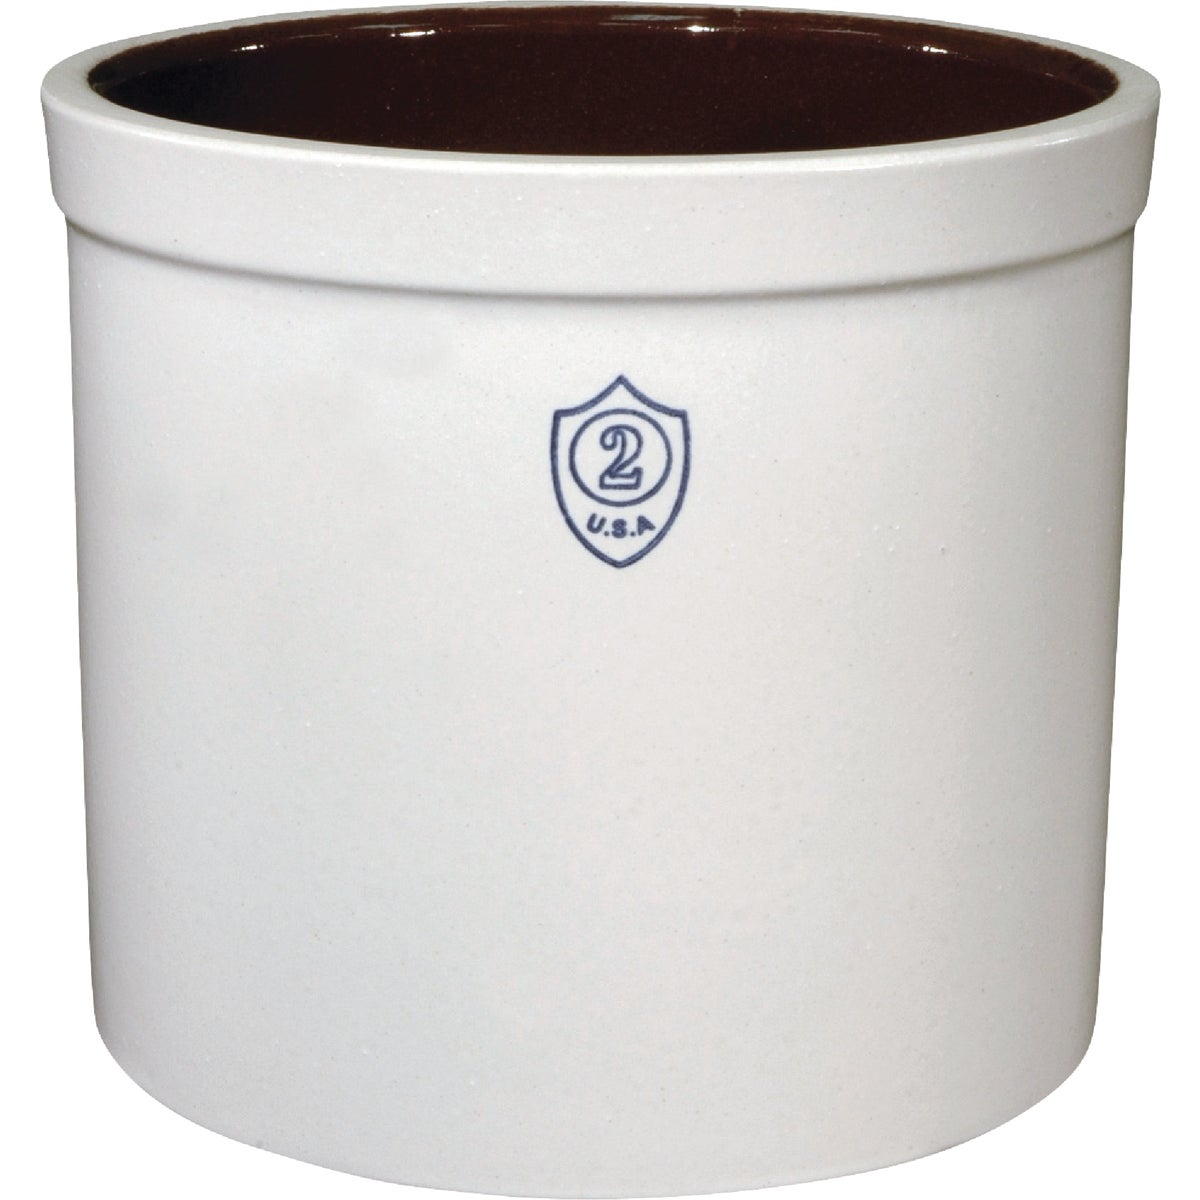 2 GALLON CROCK - 2436 by Ohio Stoneware